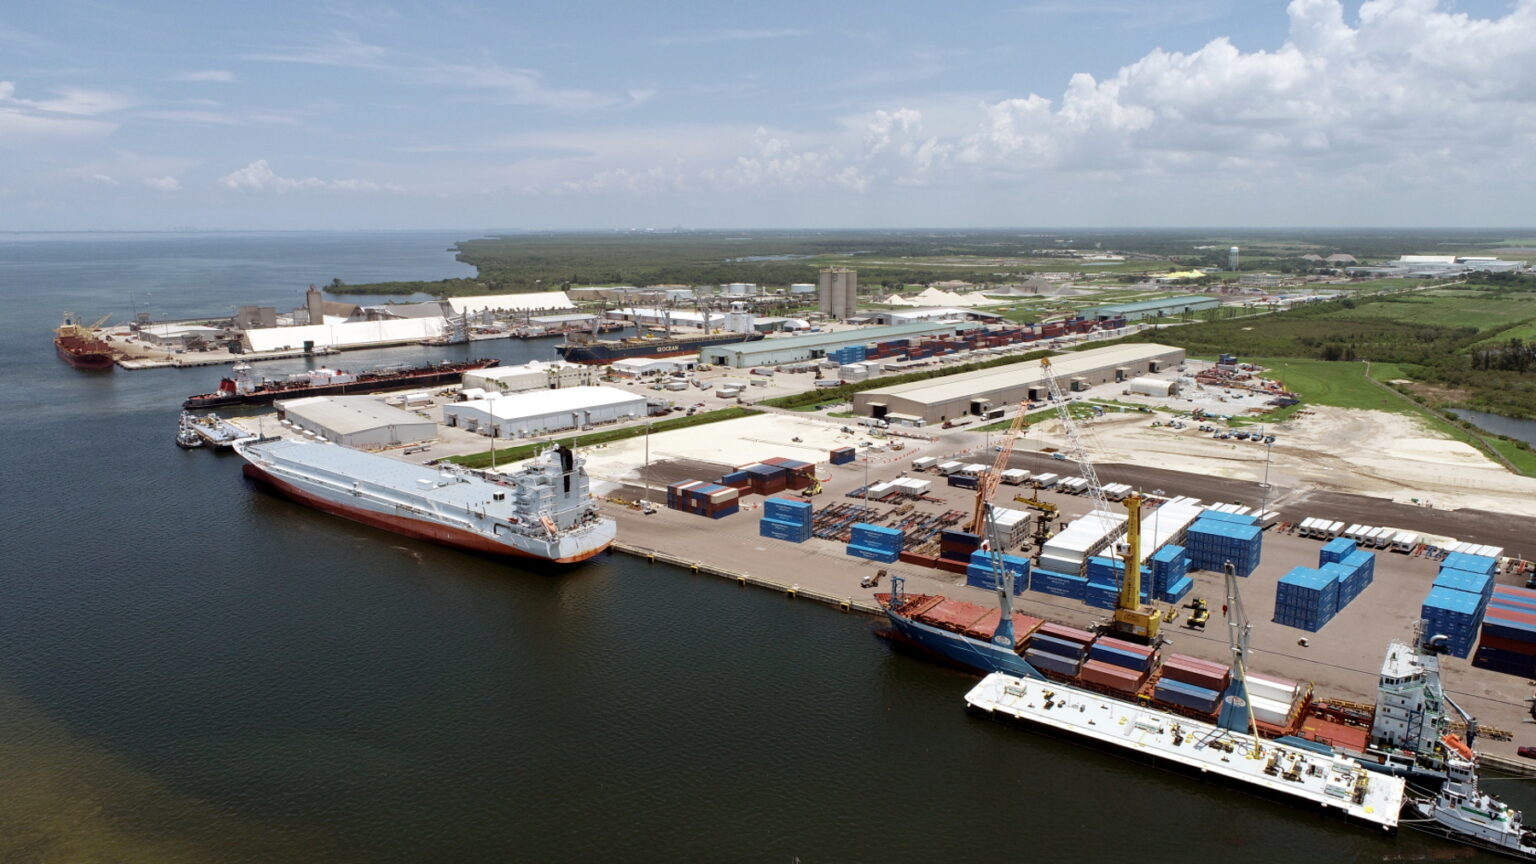 Port Manatee welcomes facility acquisition by Aceros Arequipa unit. Image: Port Manatee